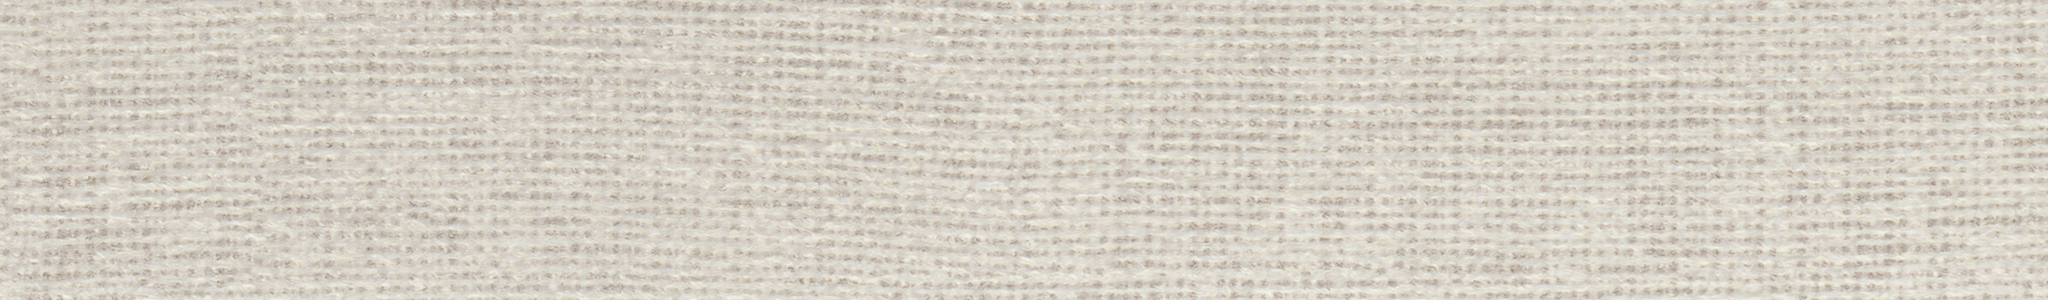 HD 29416 ABS Edge Beige Textile Pore